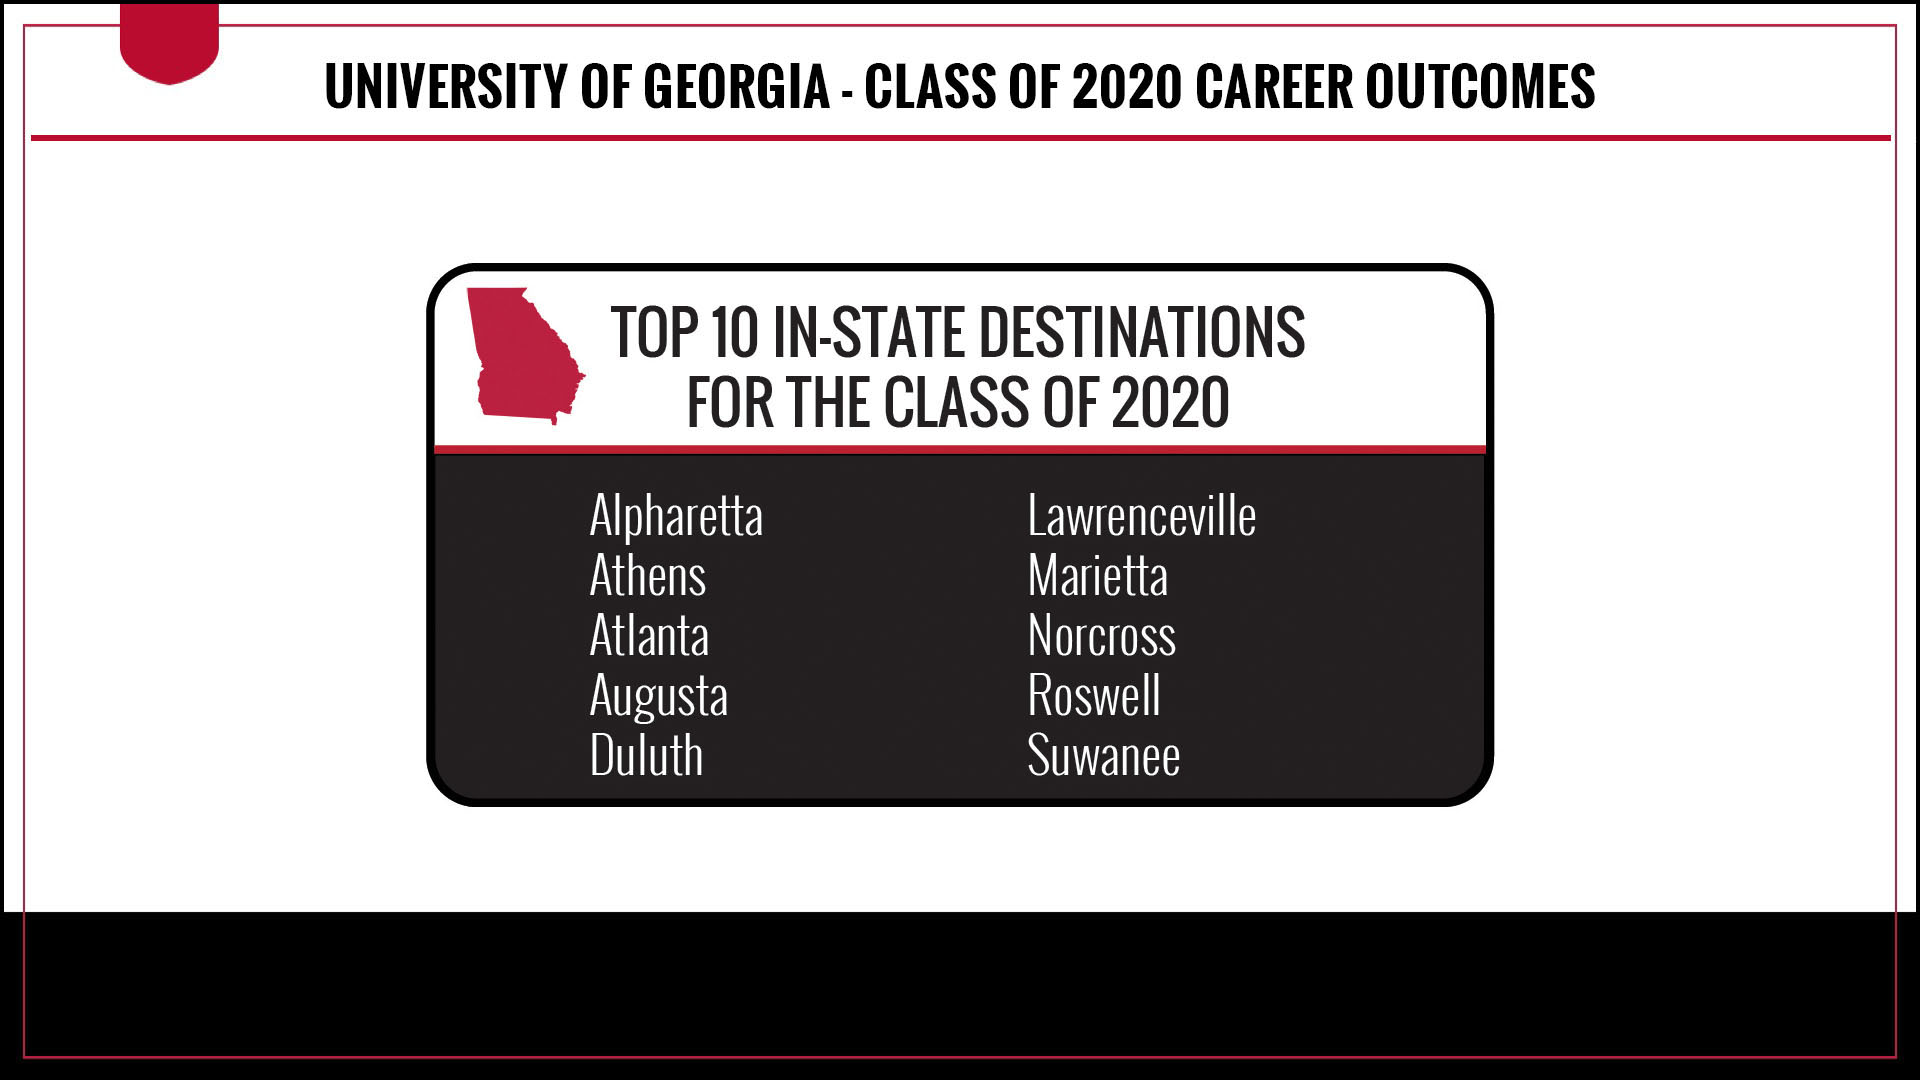 Top In-State destinations for the class of 2020 include - Alpharetta, Athens, Atlanta, Augusta, Duluth, Lawrenceville, Marietta, Norcross, Roswell, and Suwanee